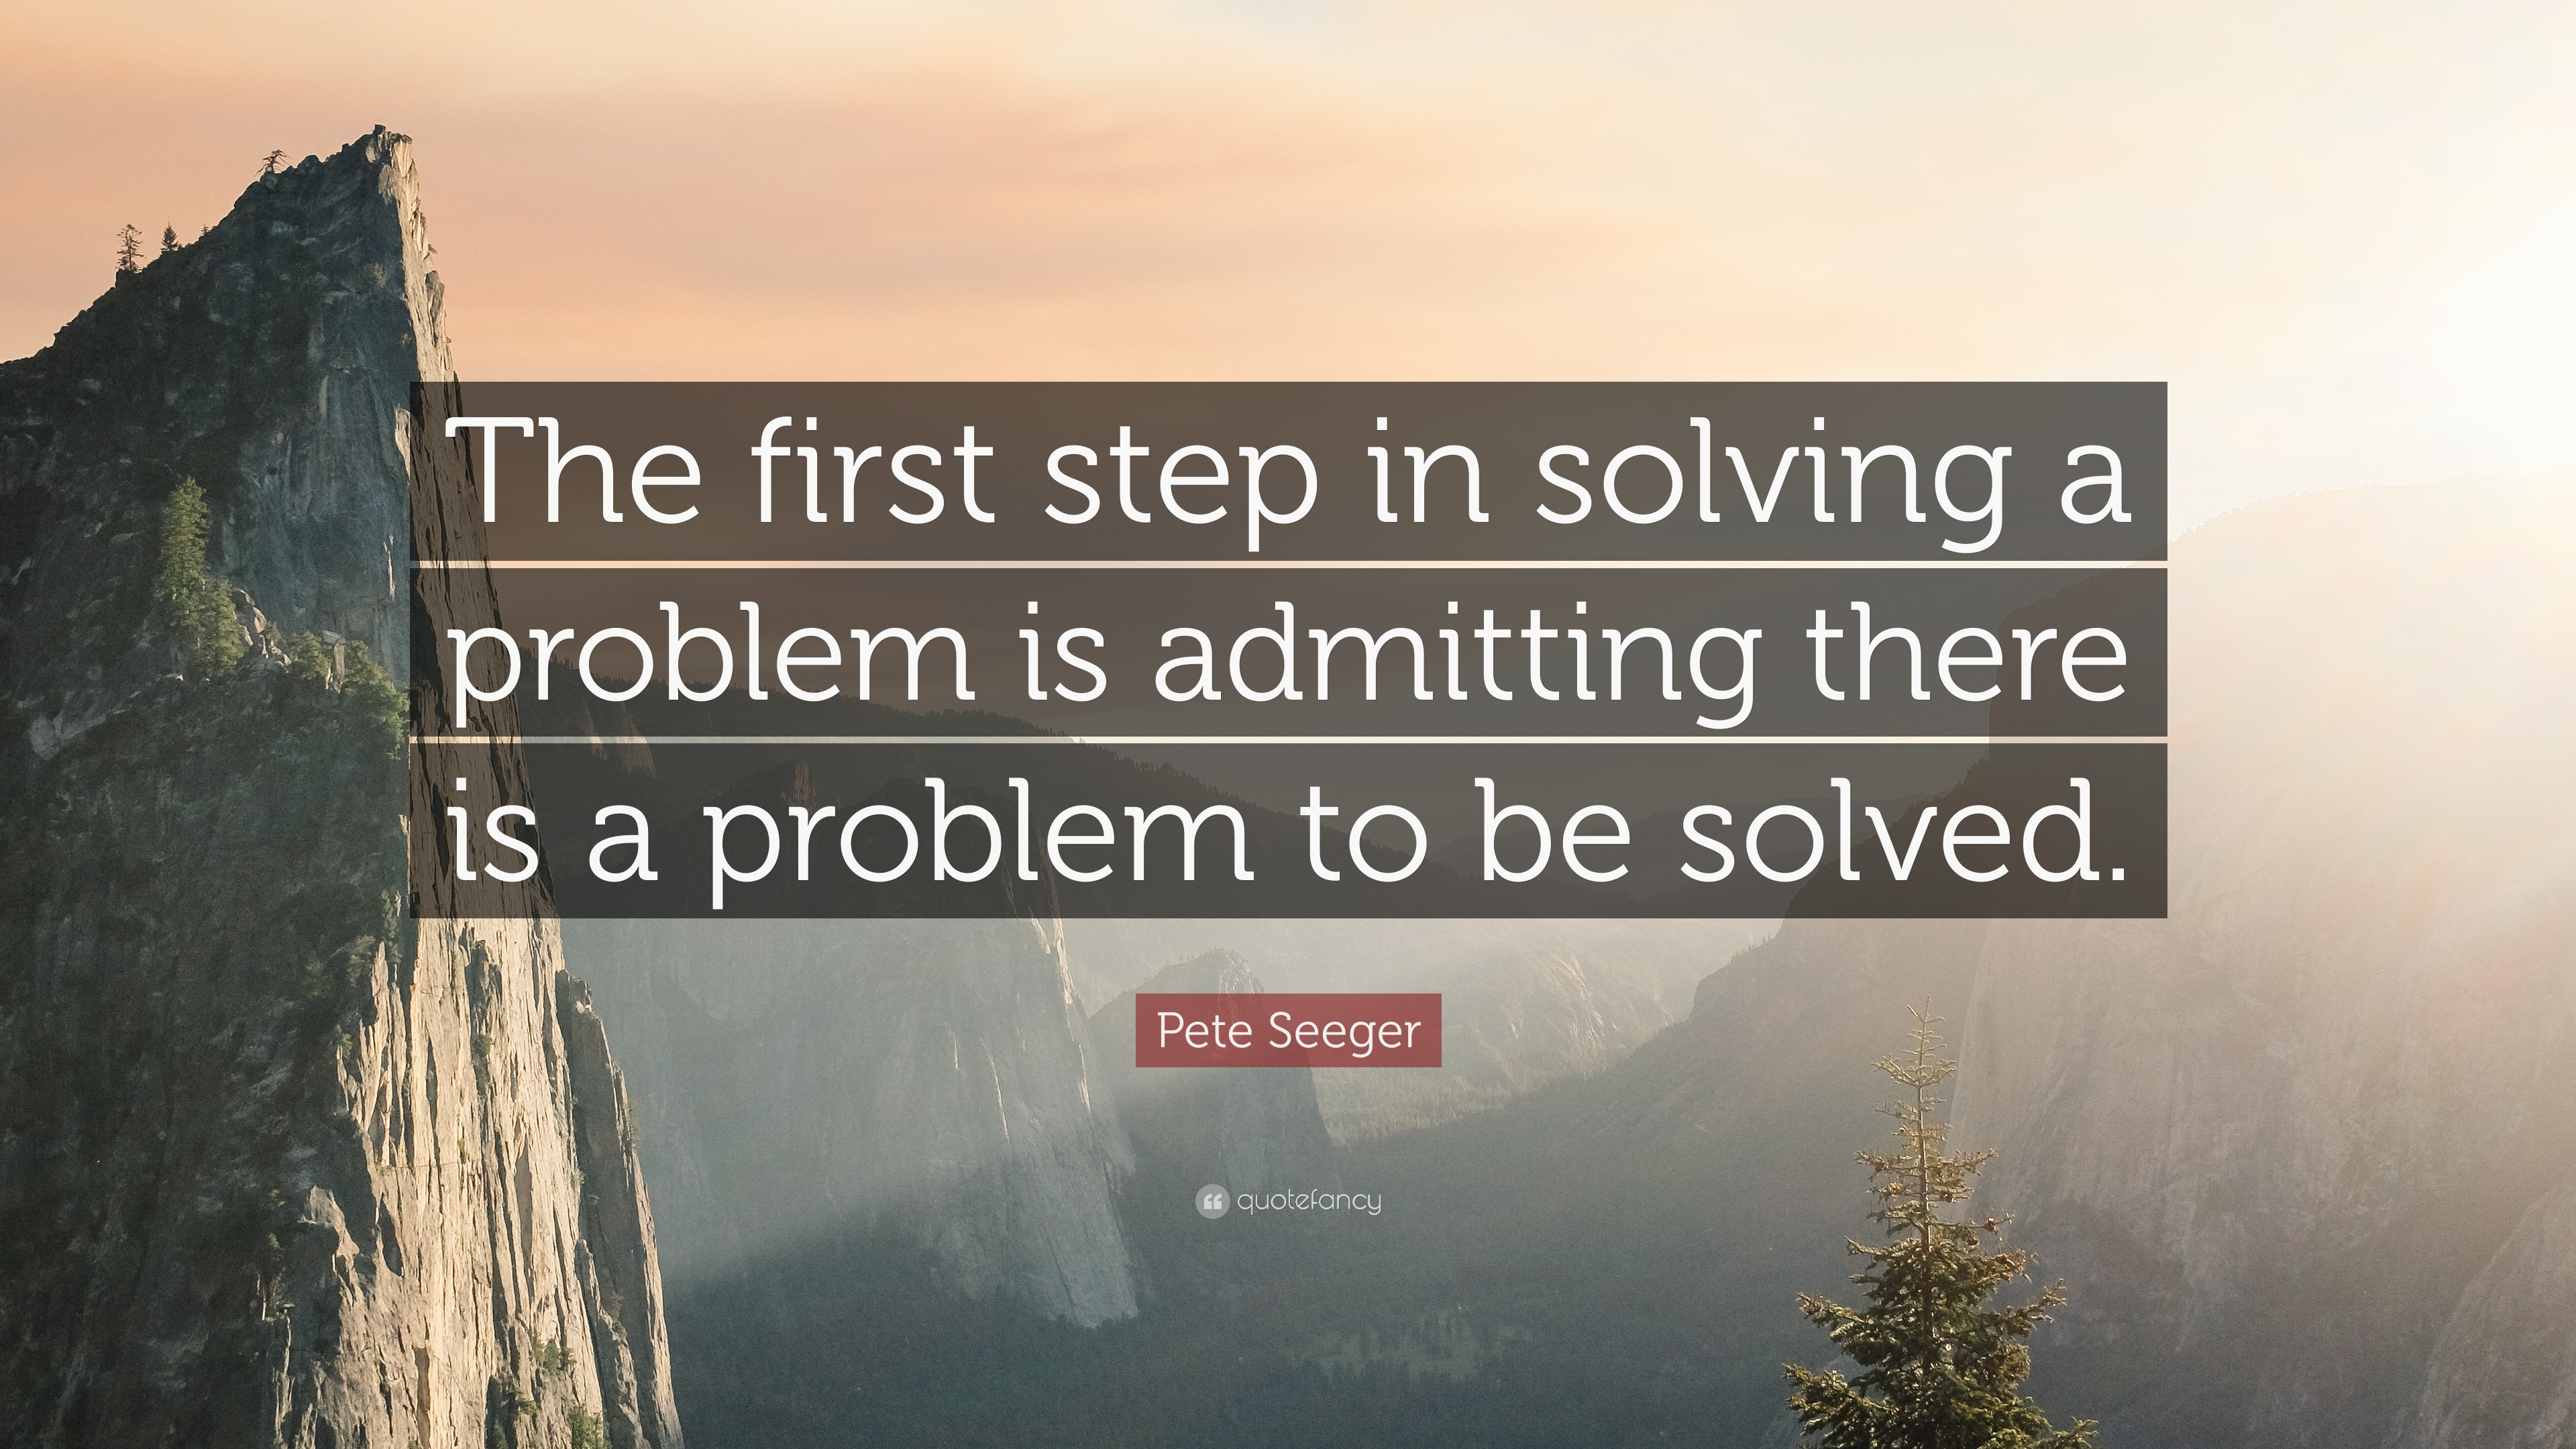 pete seeger quote the first step in solving a problem is admitting